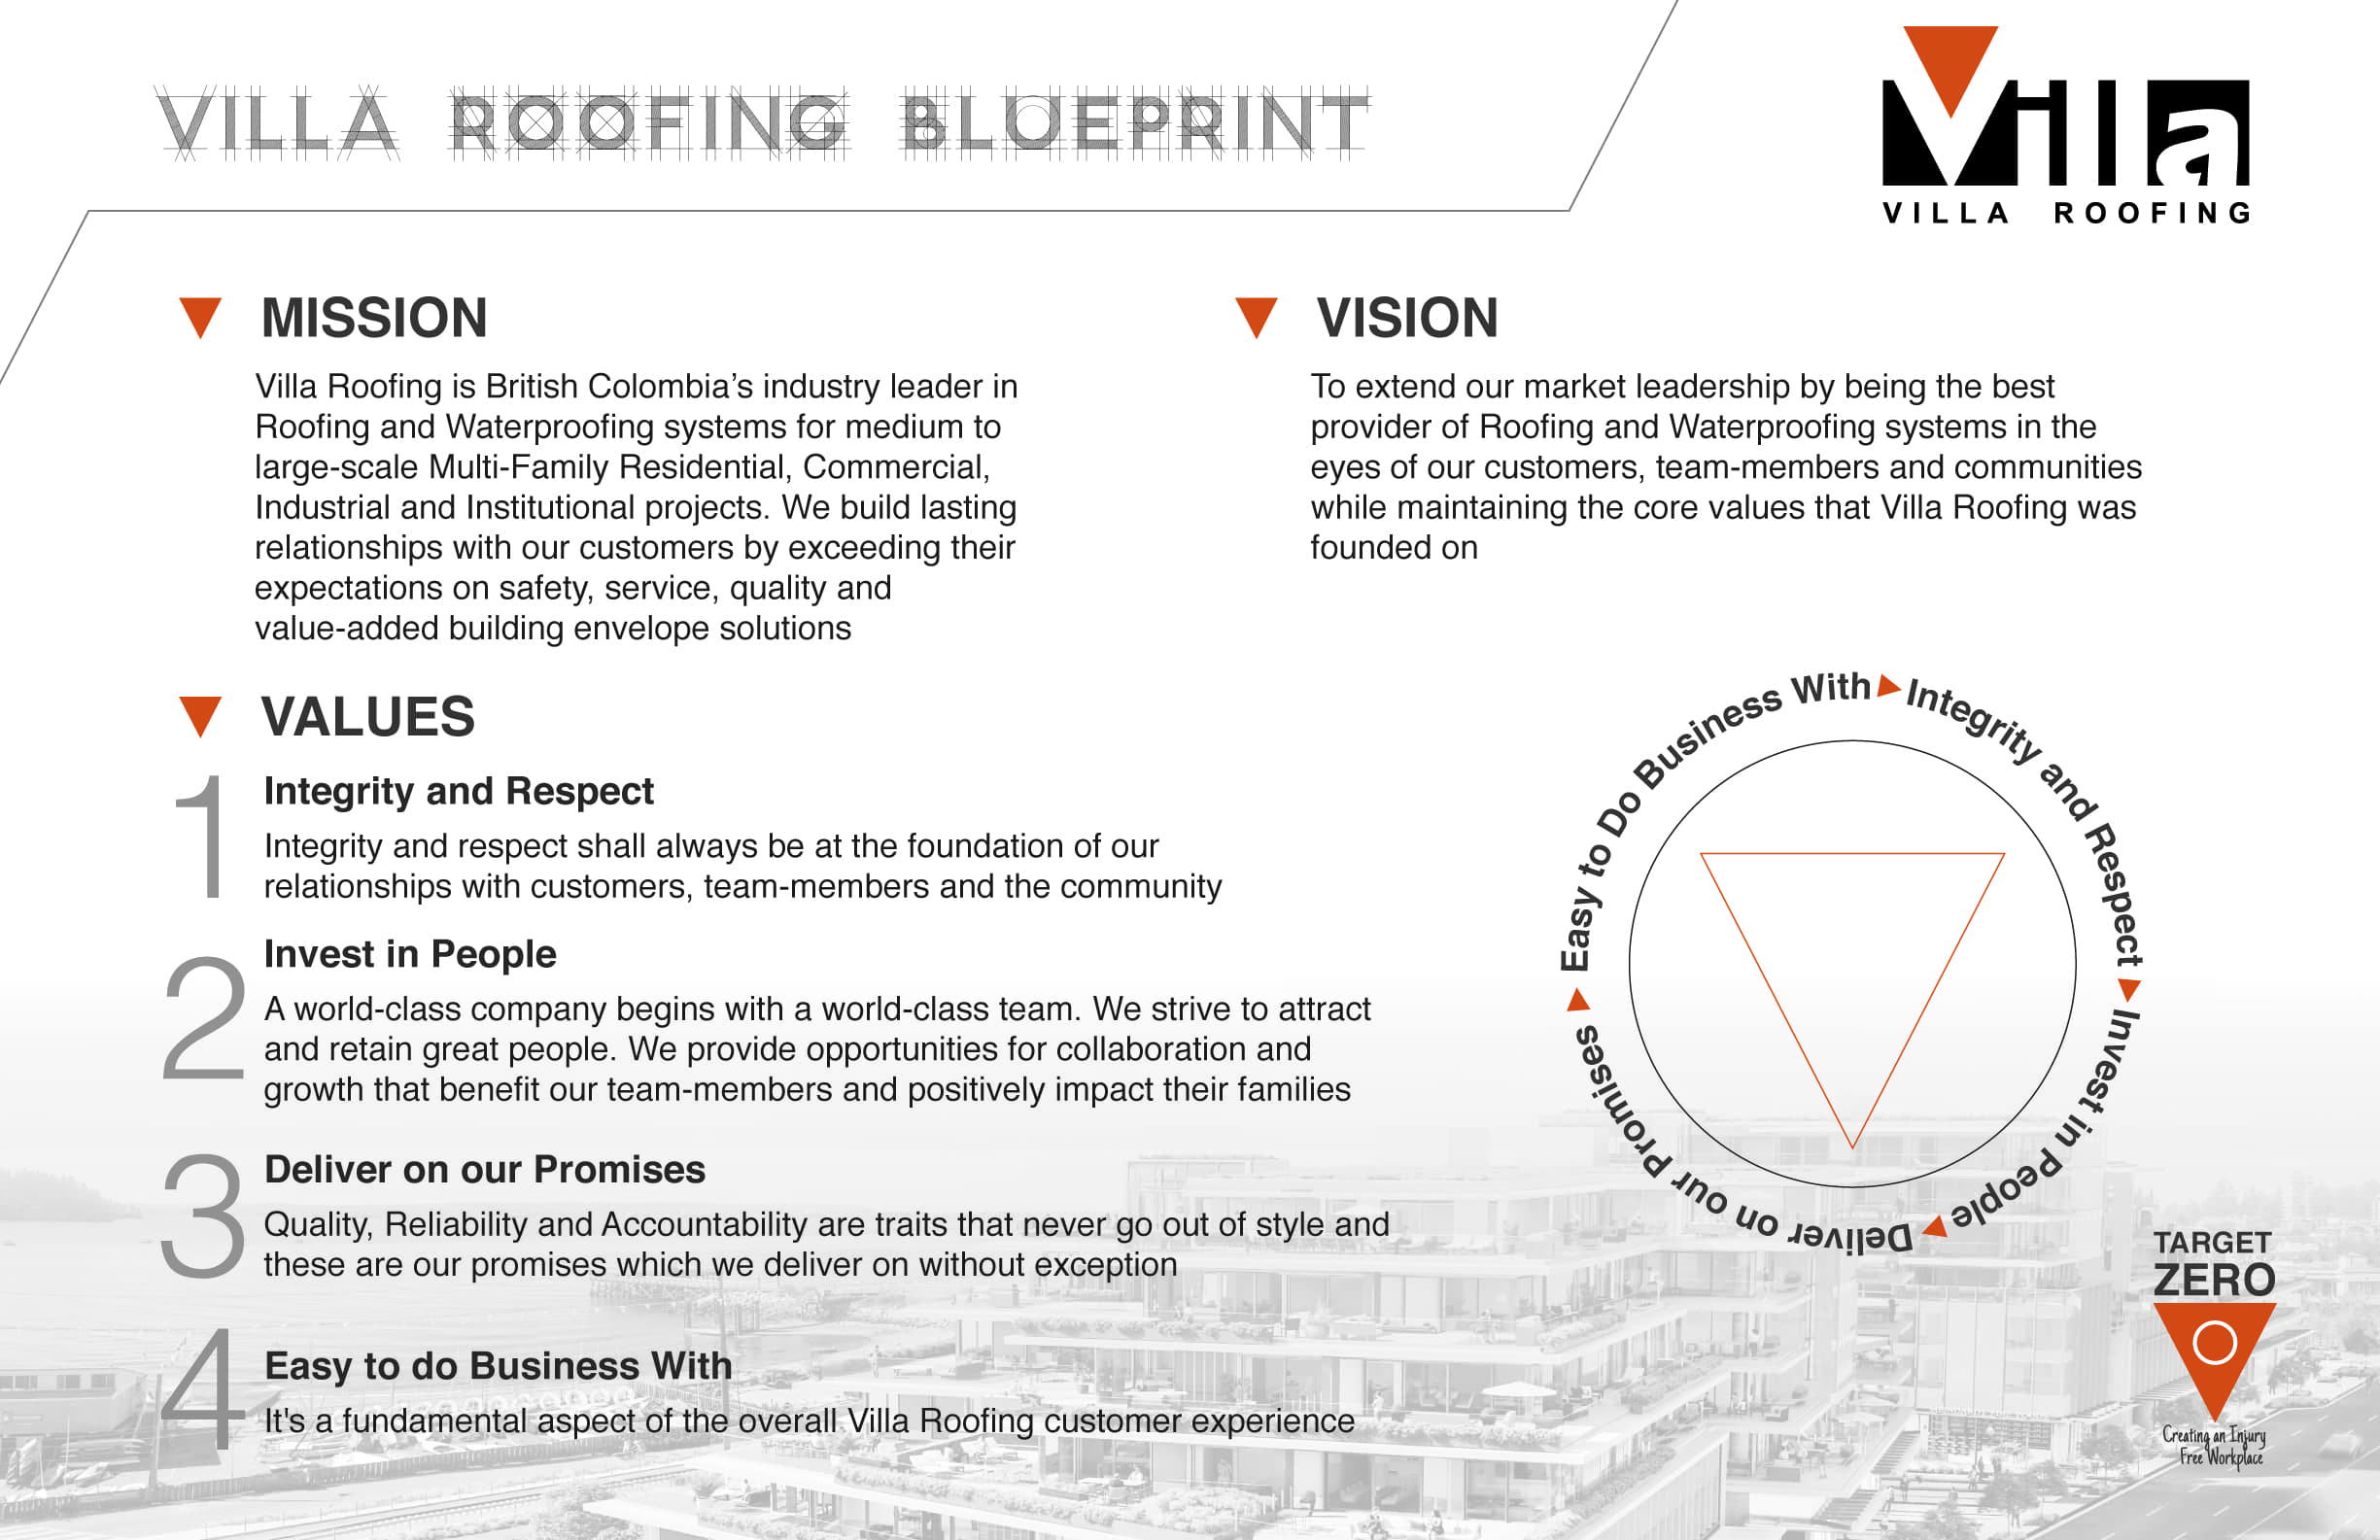 About us villa roofing bcs industry leader in roofing and villa roofing is committed to creating a culture defined by our values and a passion for building lasting relationships with our customers by exceeding malvernweather Images